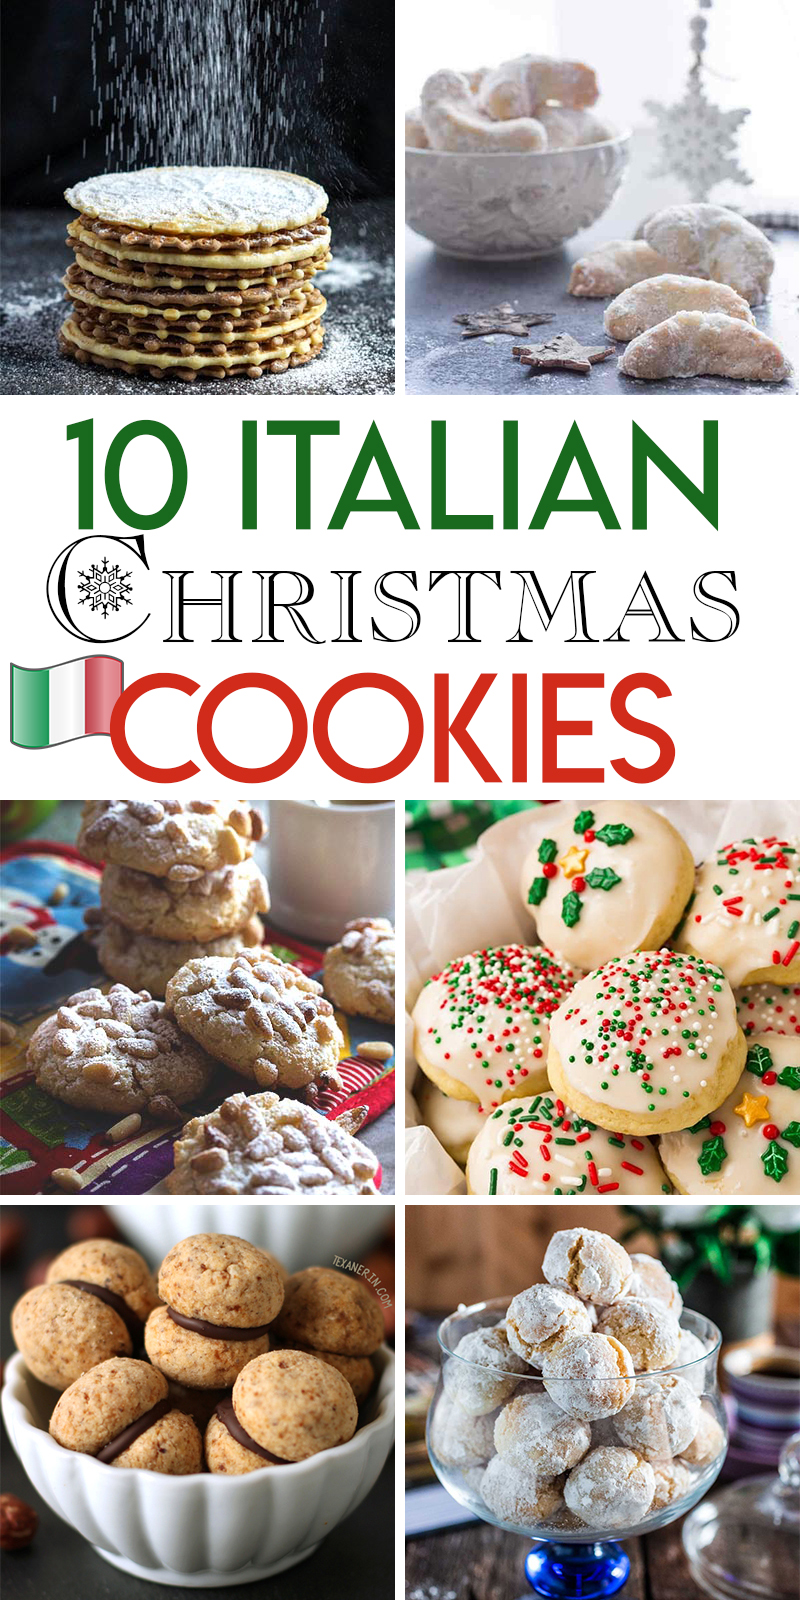 10 Irresistible Italian Christmas Cookie Recipes Random Acts Of Baking